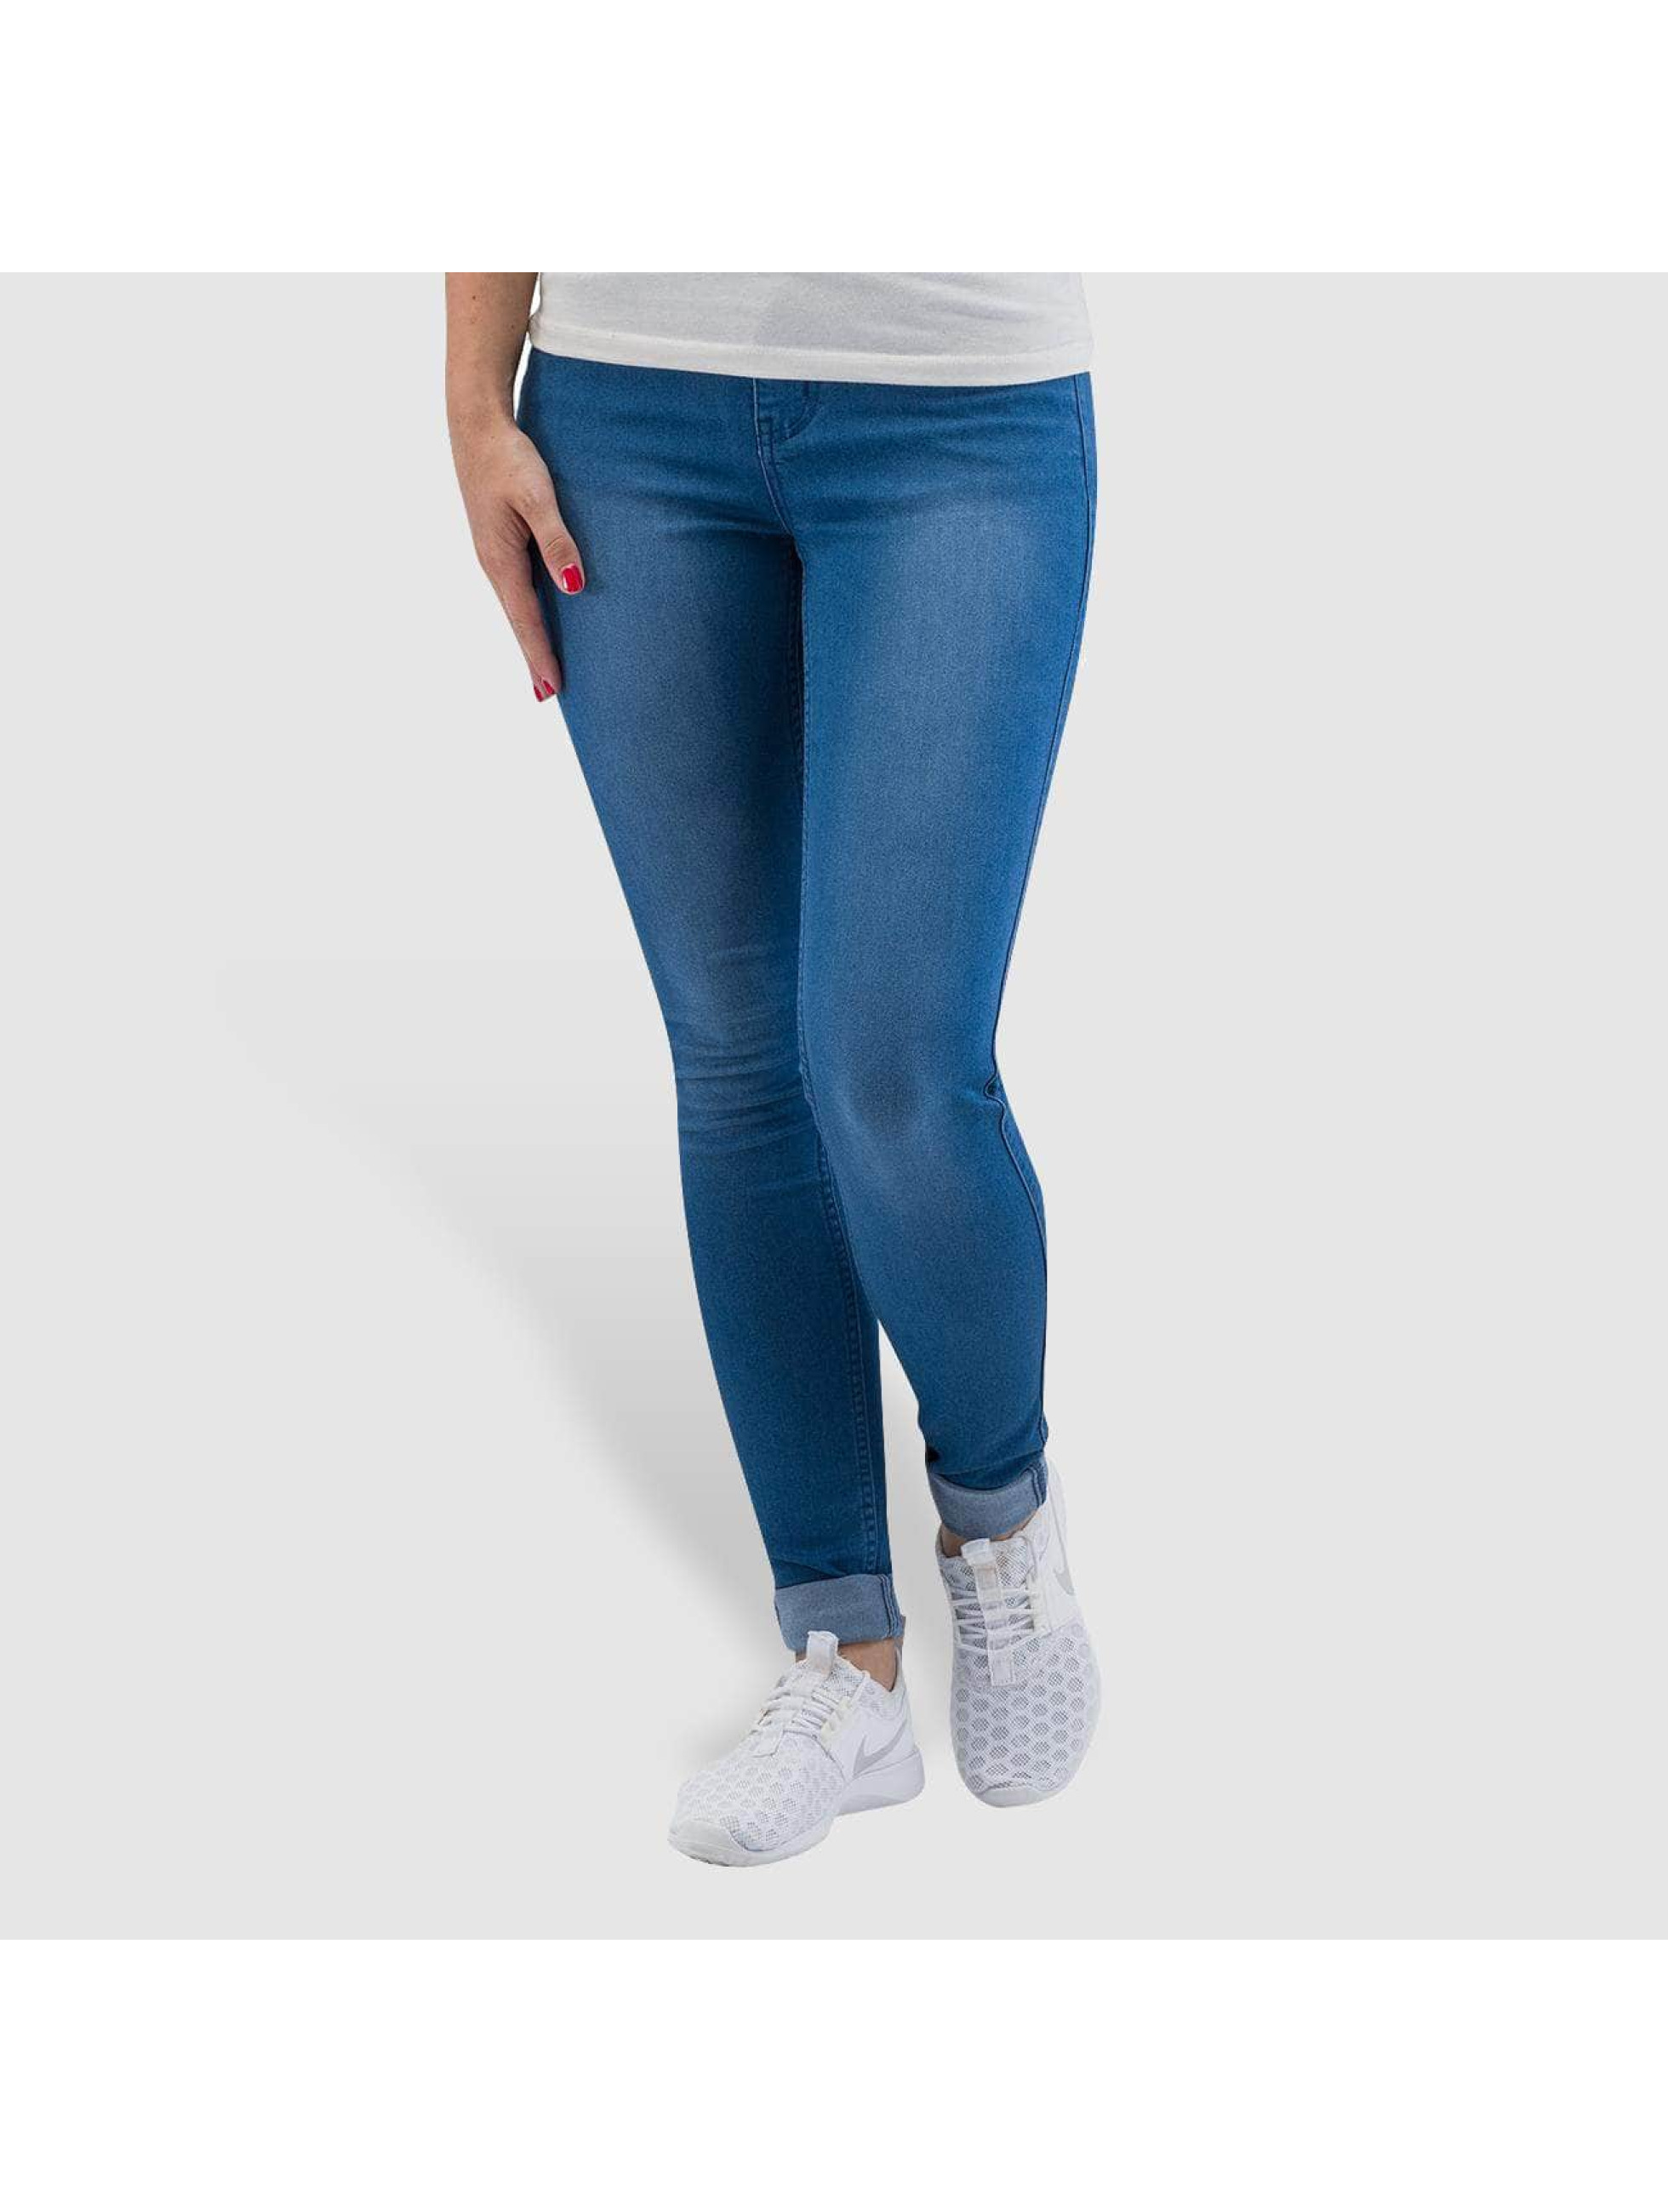 Pieces Skinny Jeans Just Jute blau